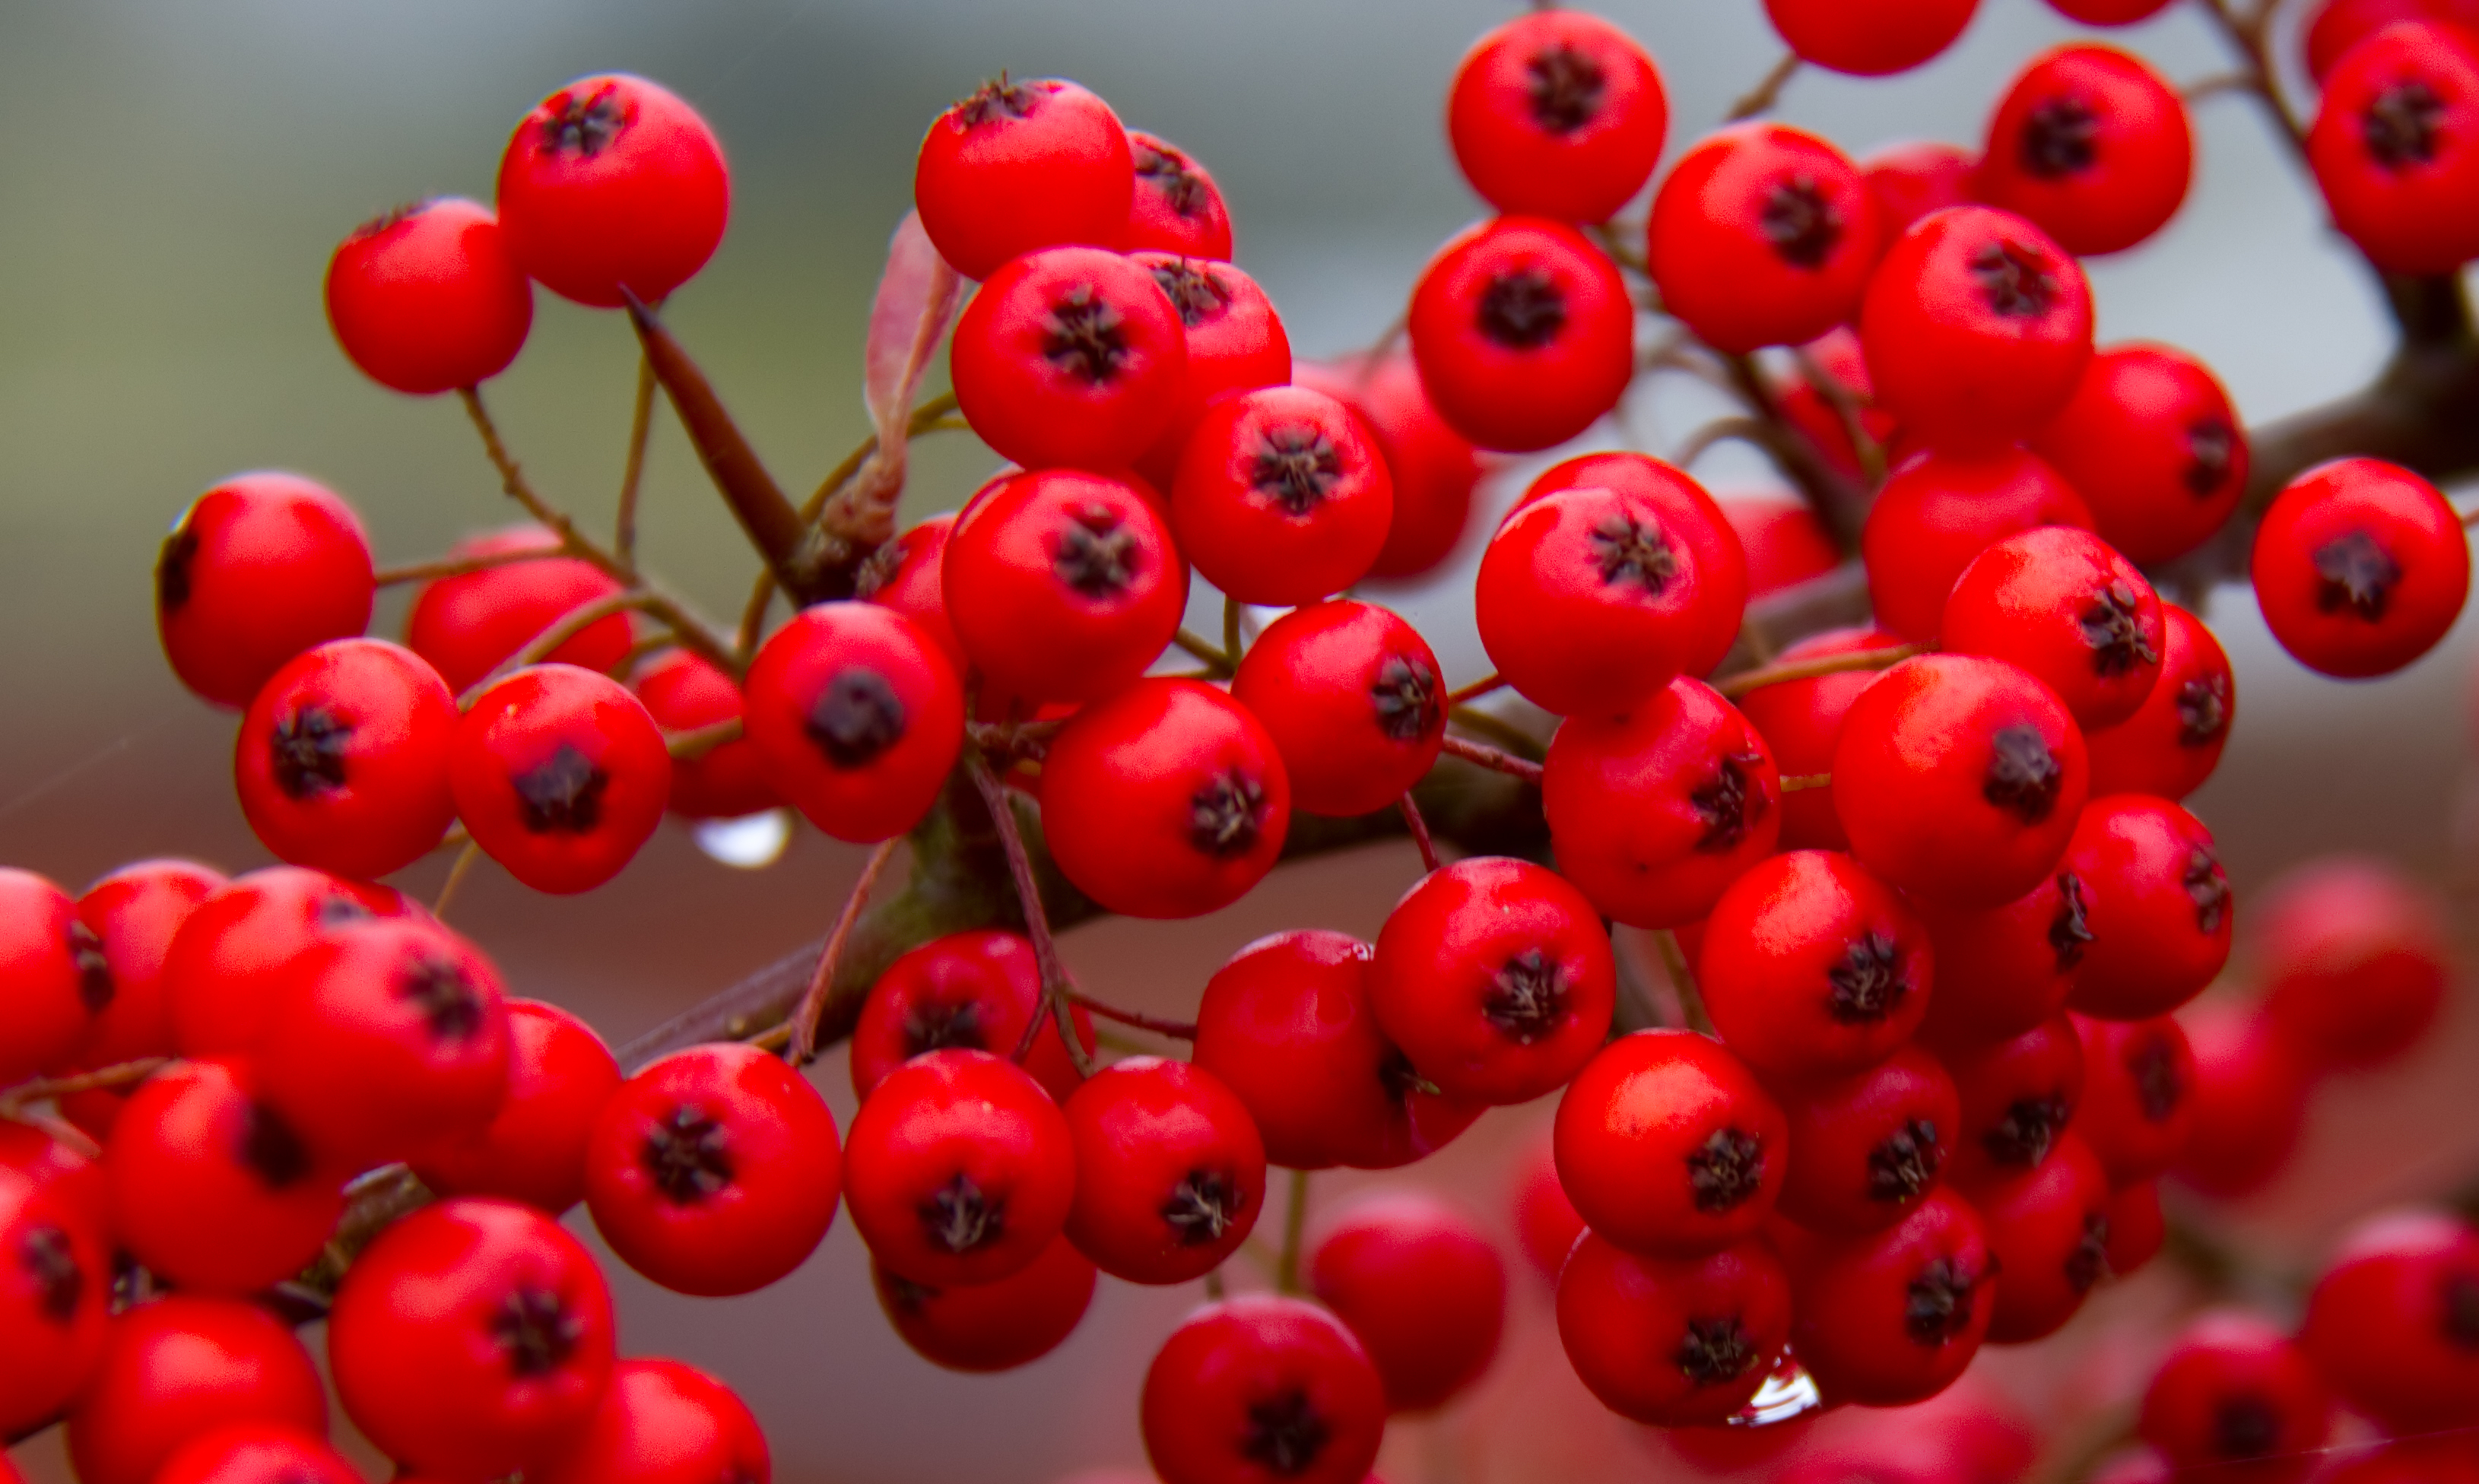 File:Red Berries (8119043808).jpg - Wikimedia Commons